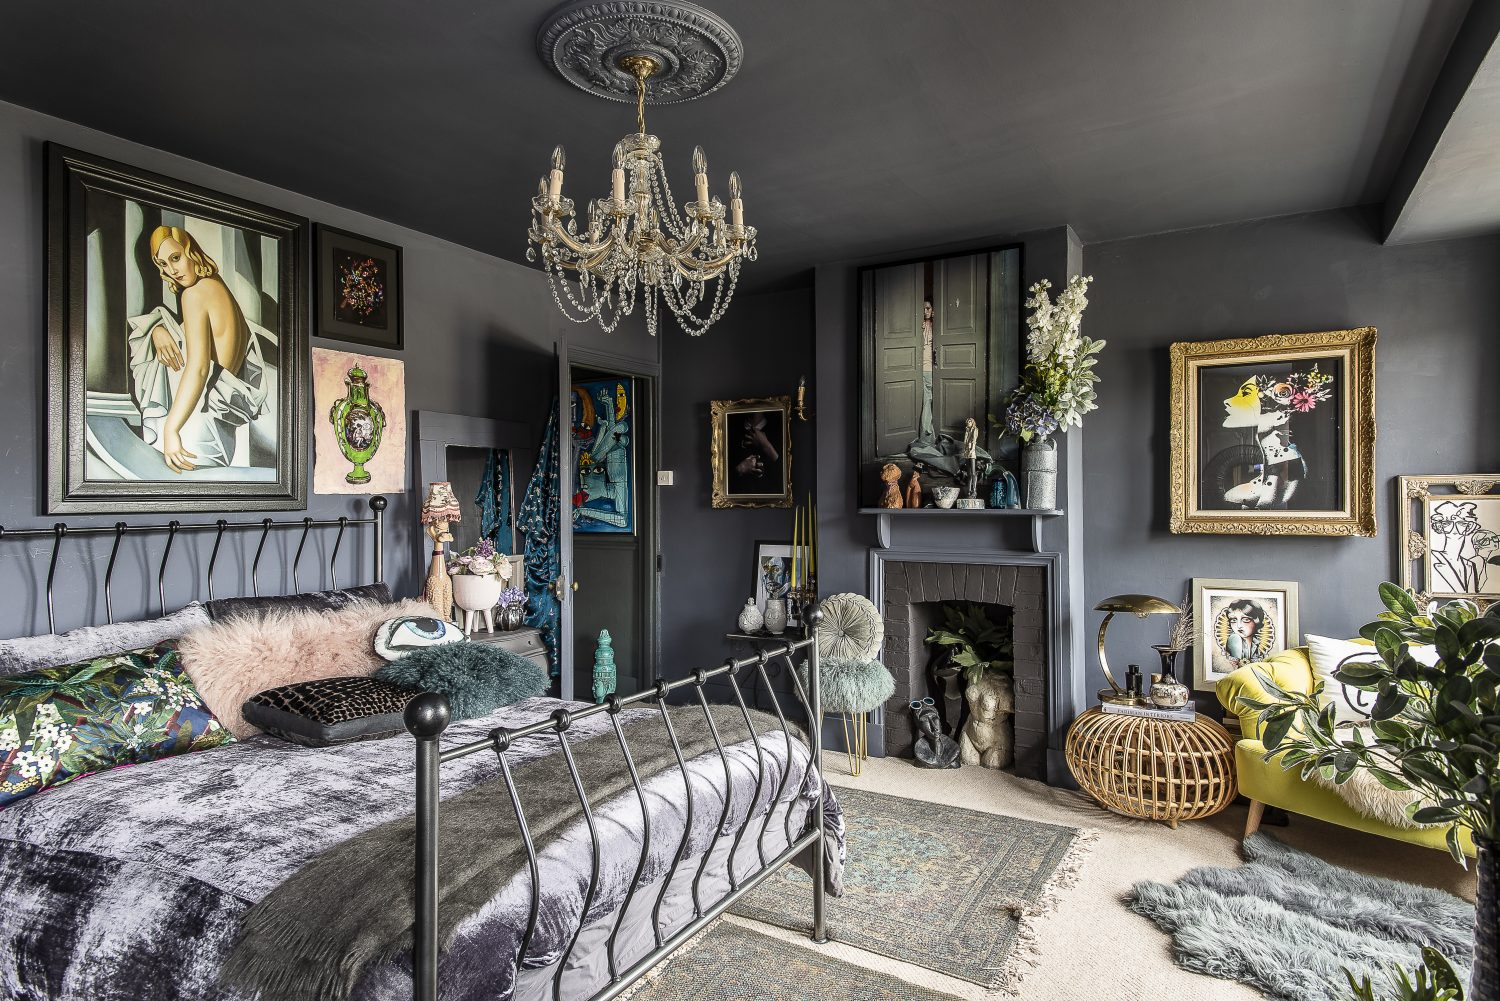 Jaz mixes real pot plants with faux ones. A very clever way to fill your house with greenery, without creating a plant-care overload. Textures throughout this bedroom, and the chandelier above the bed, add to its luxurious and inviting feel